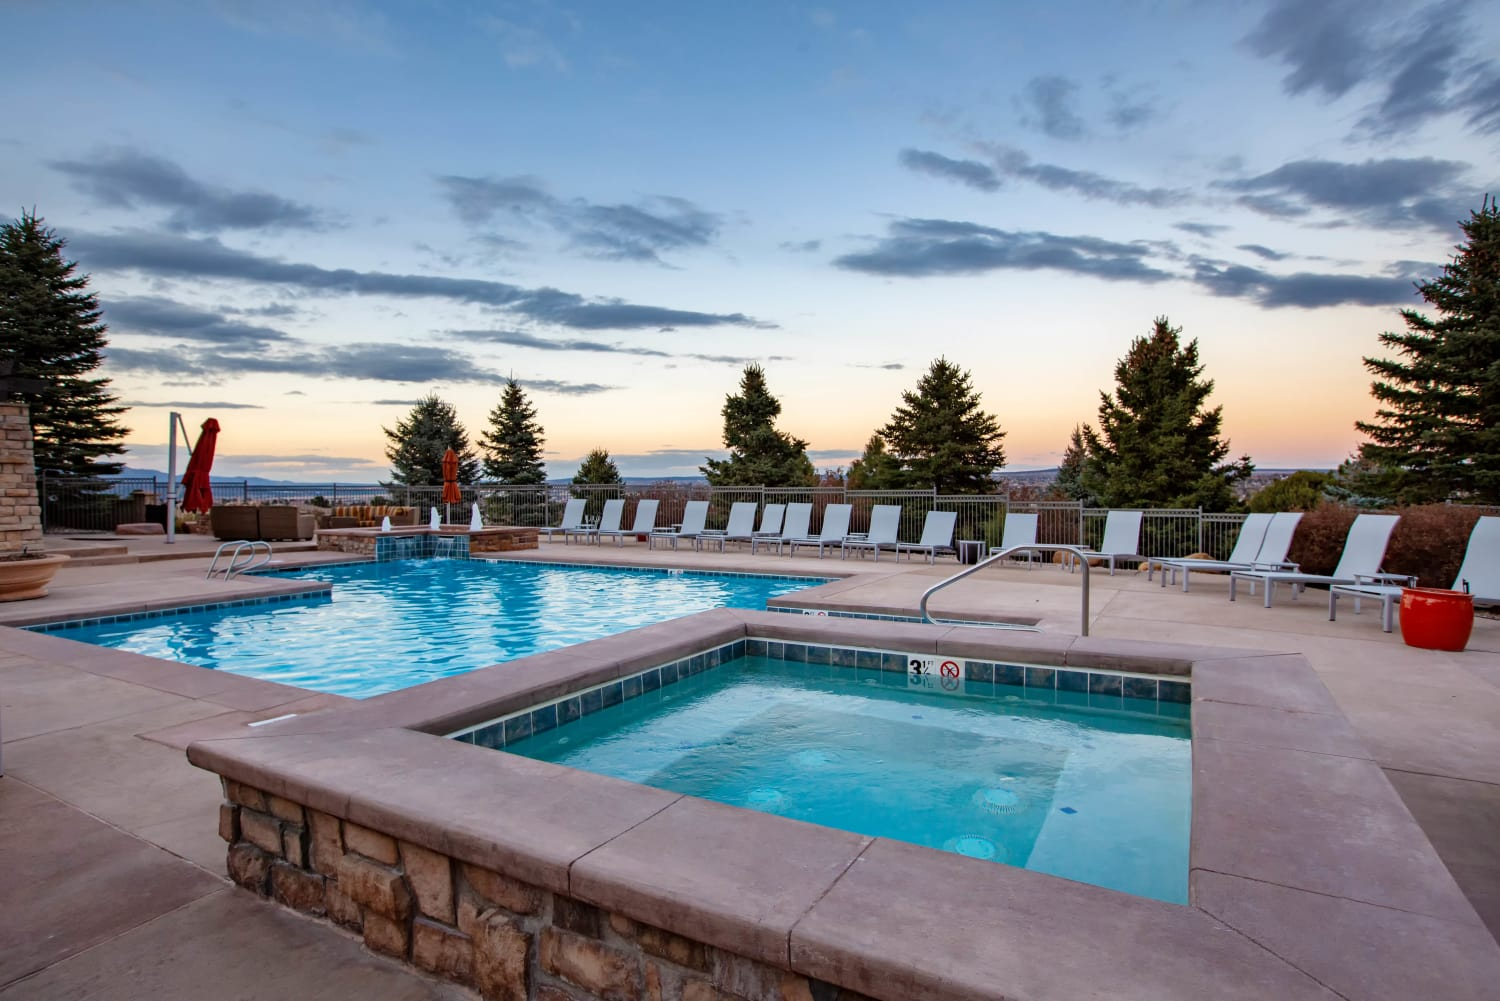 Pool views at Resort at University Park in Colorado Springs